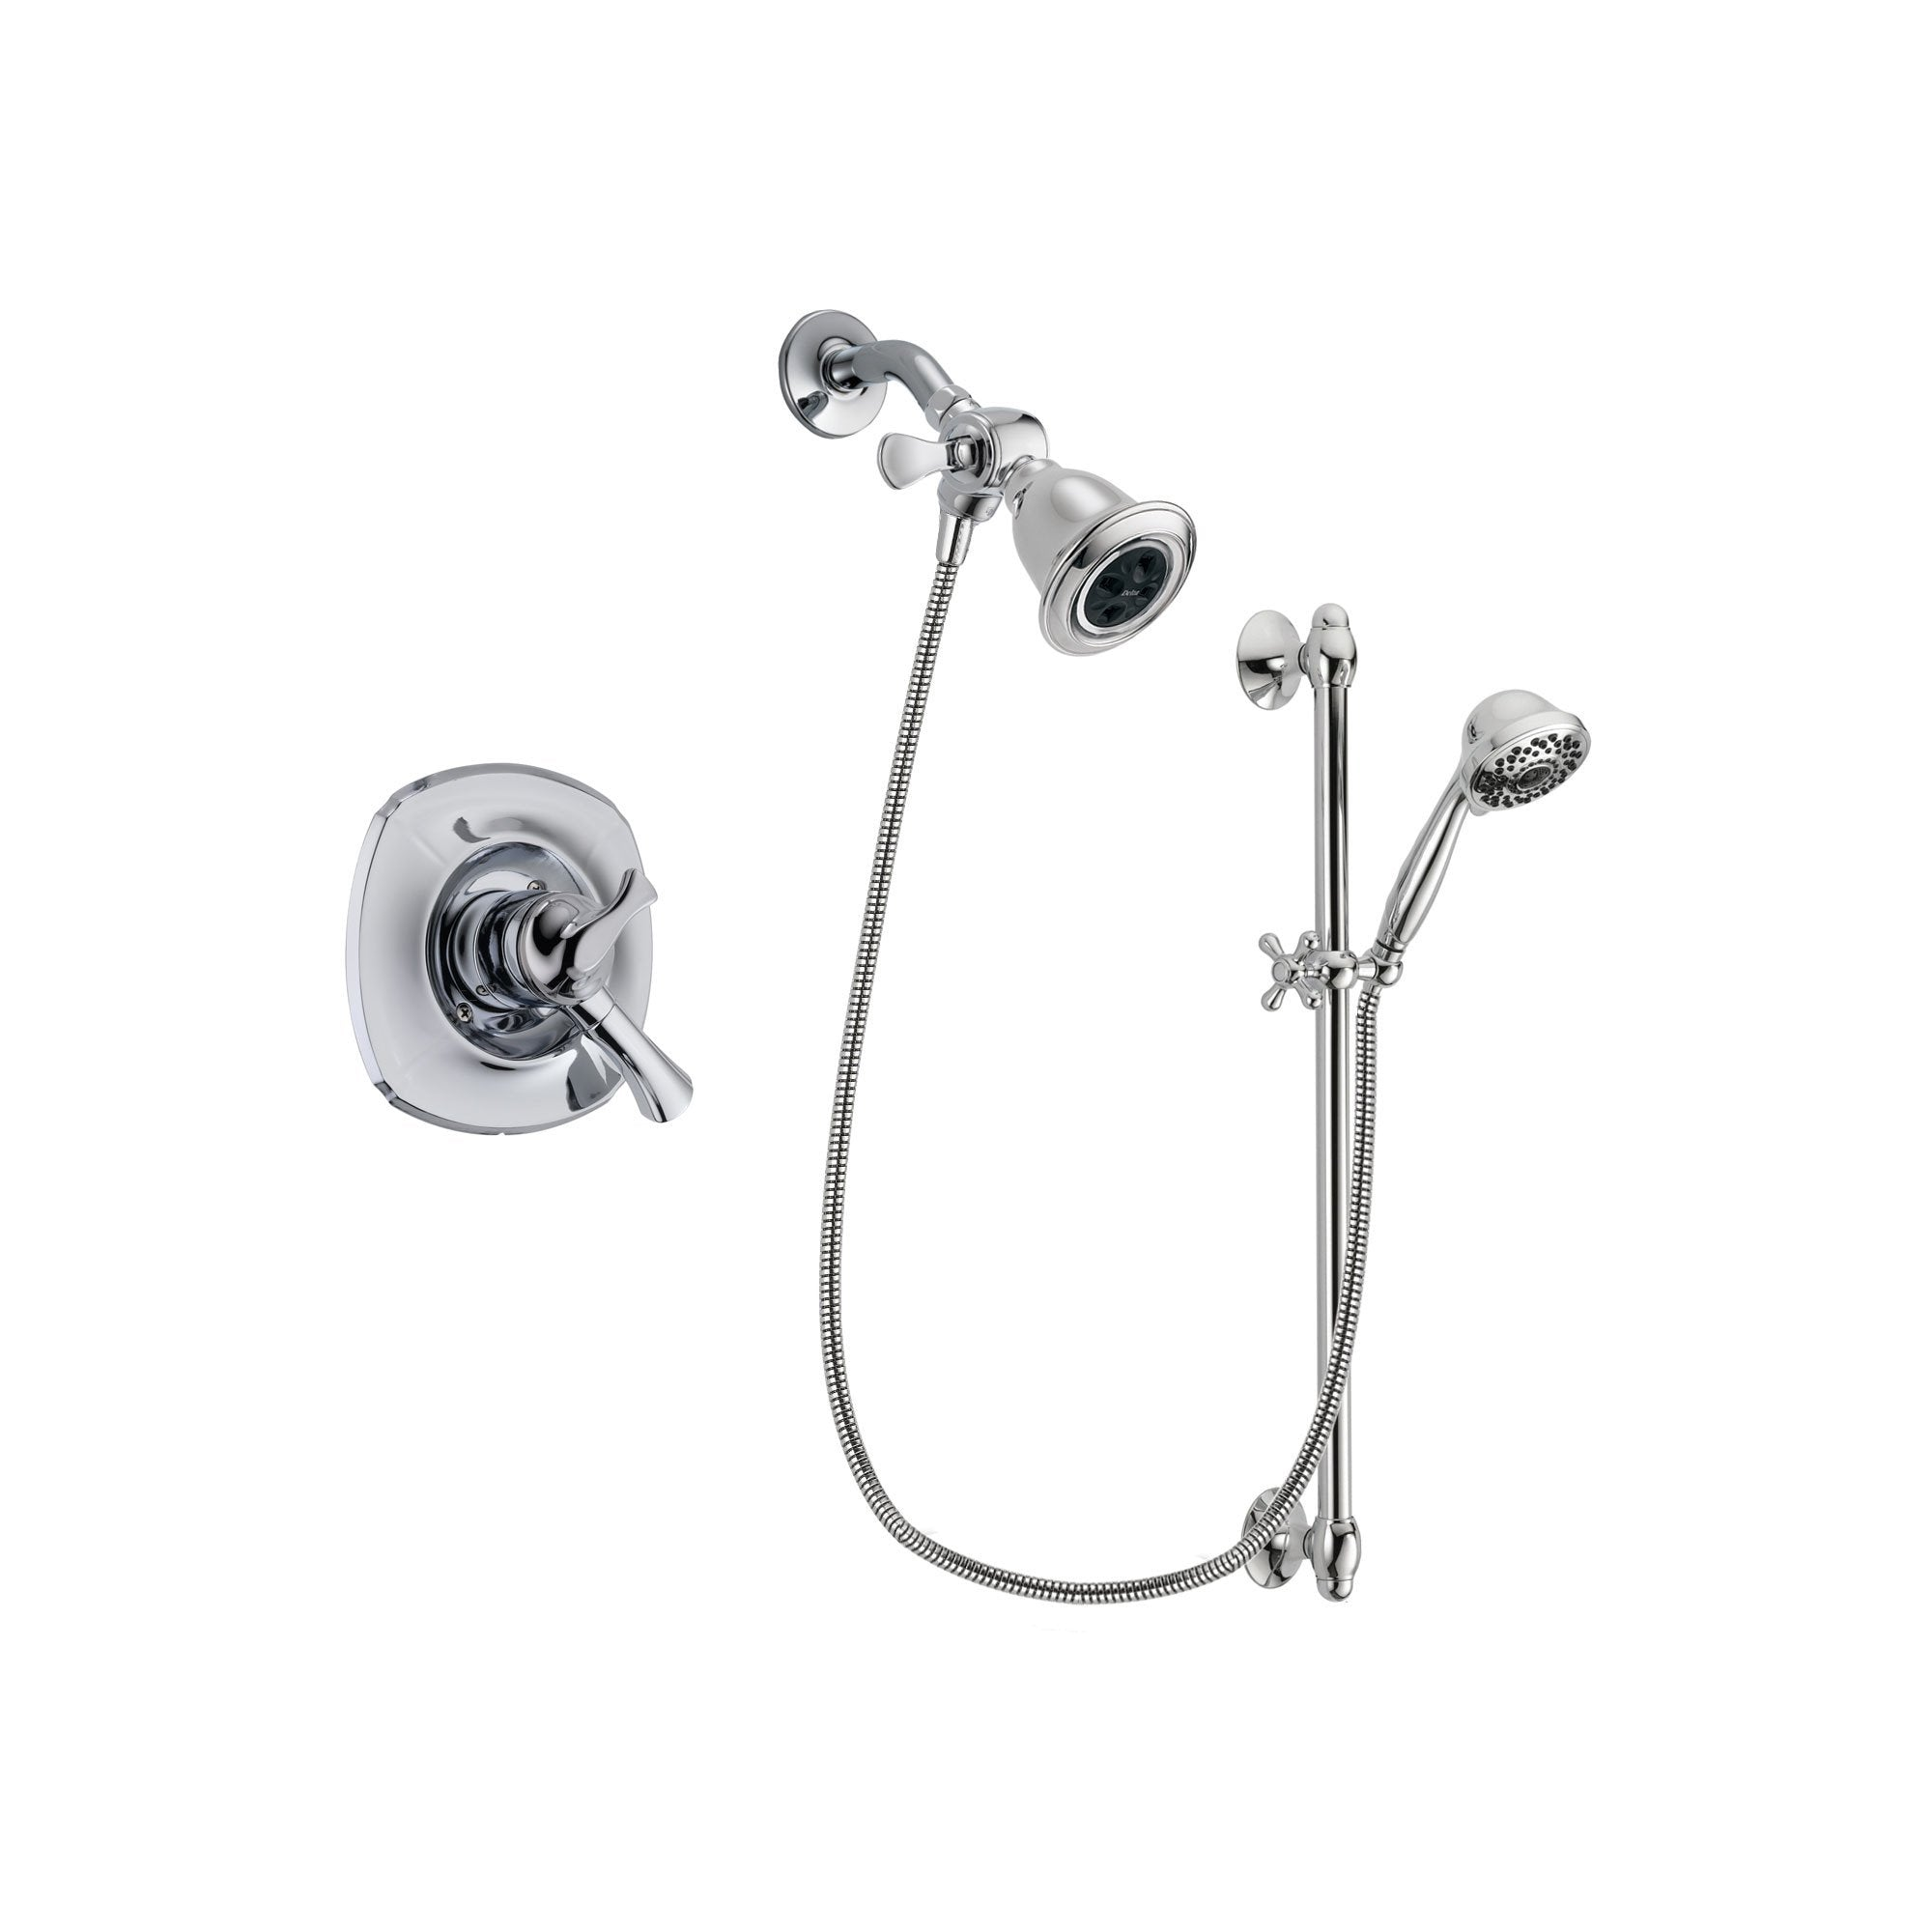 Delta Addison Chrome Shower Faucet System w/ Showerhead and Hand Shower DSP0624V